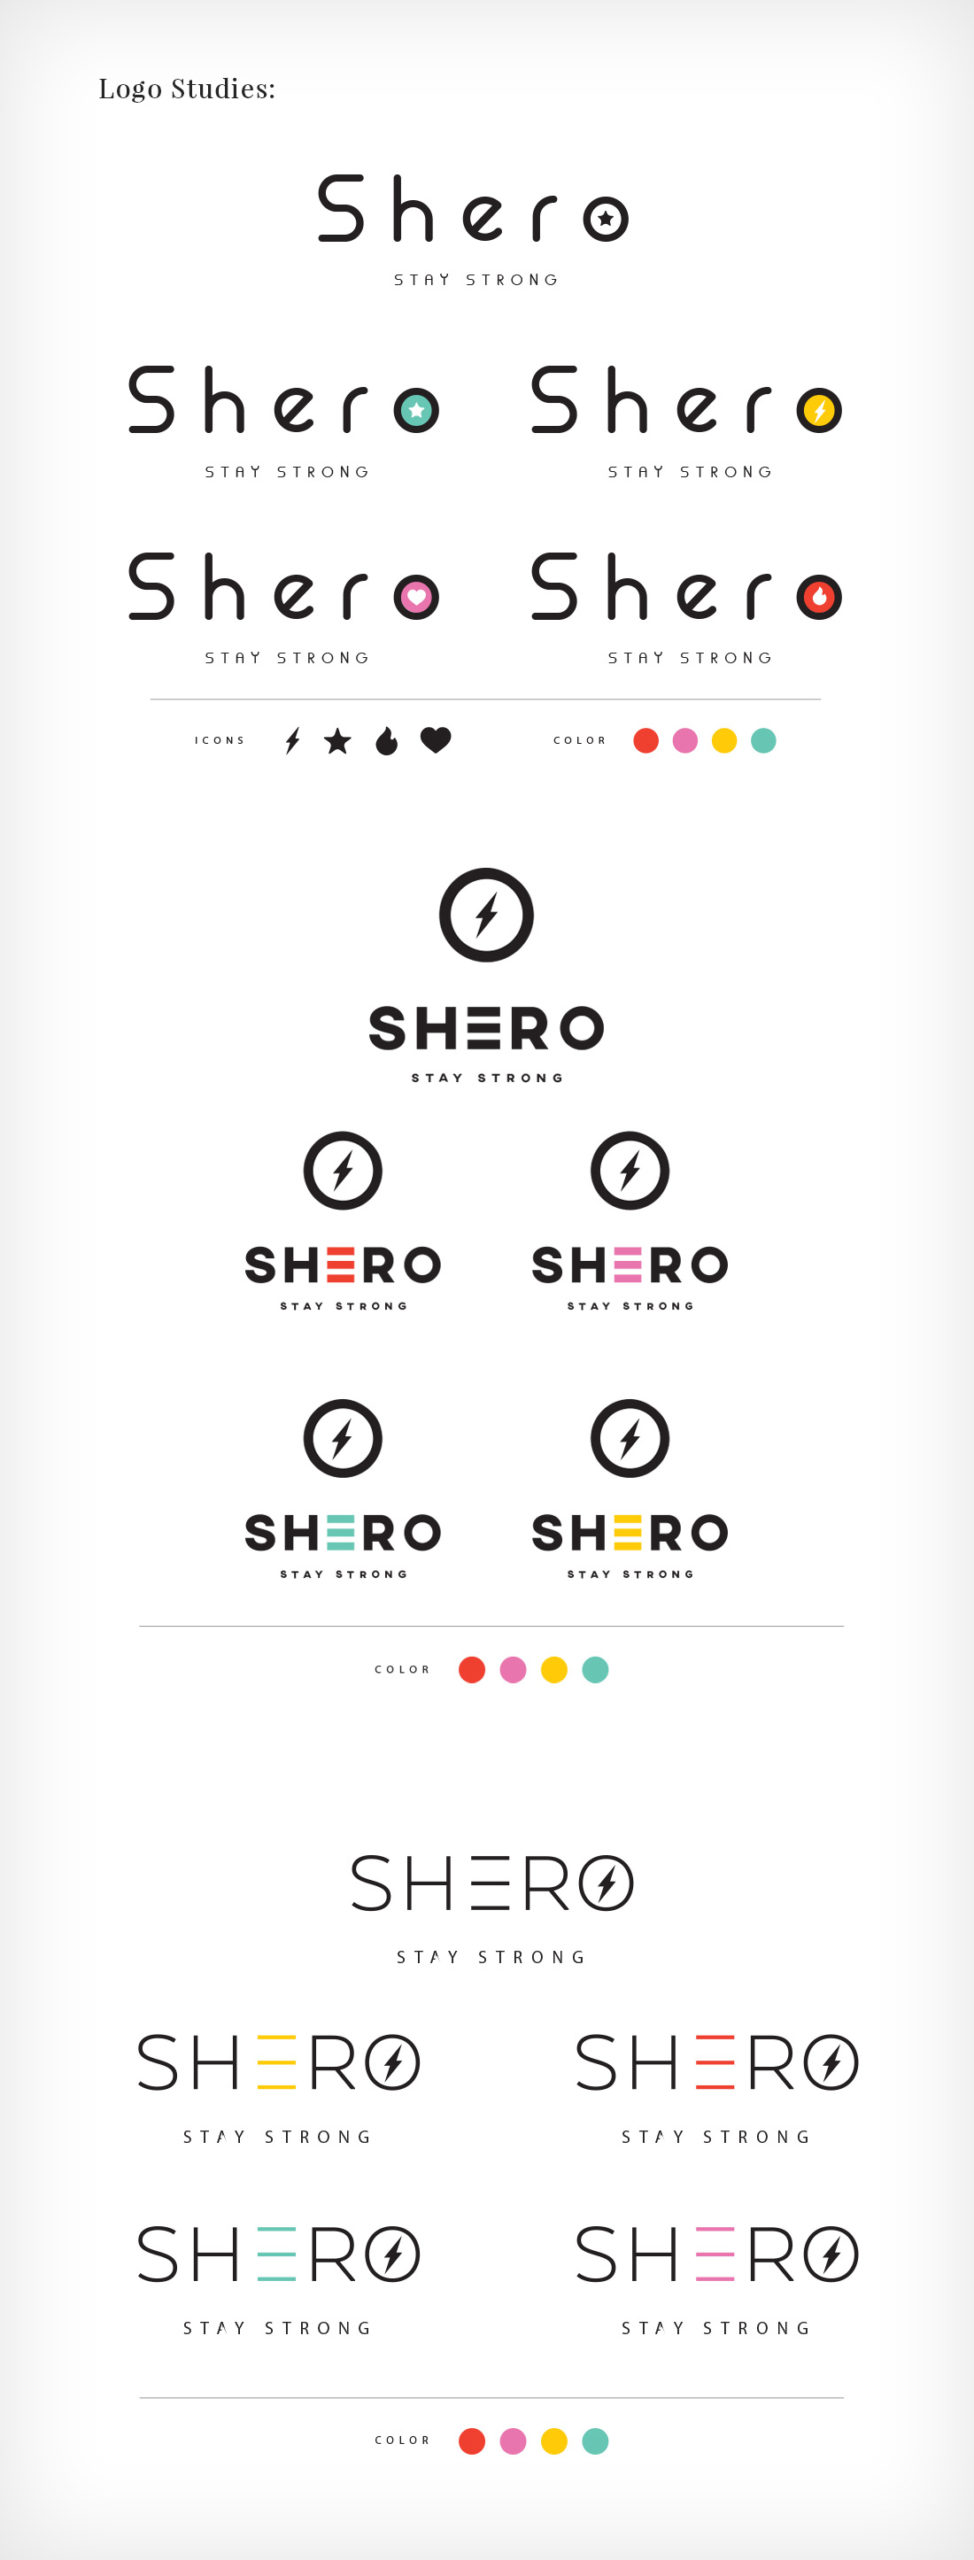 The Idea Boutique, SHERO Stay Strong - Logo Studies